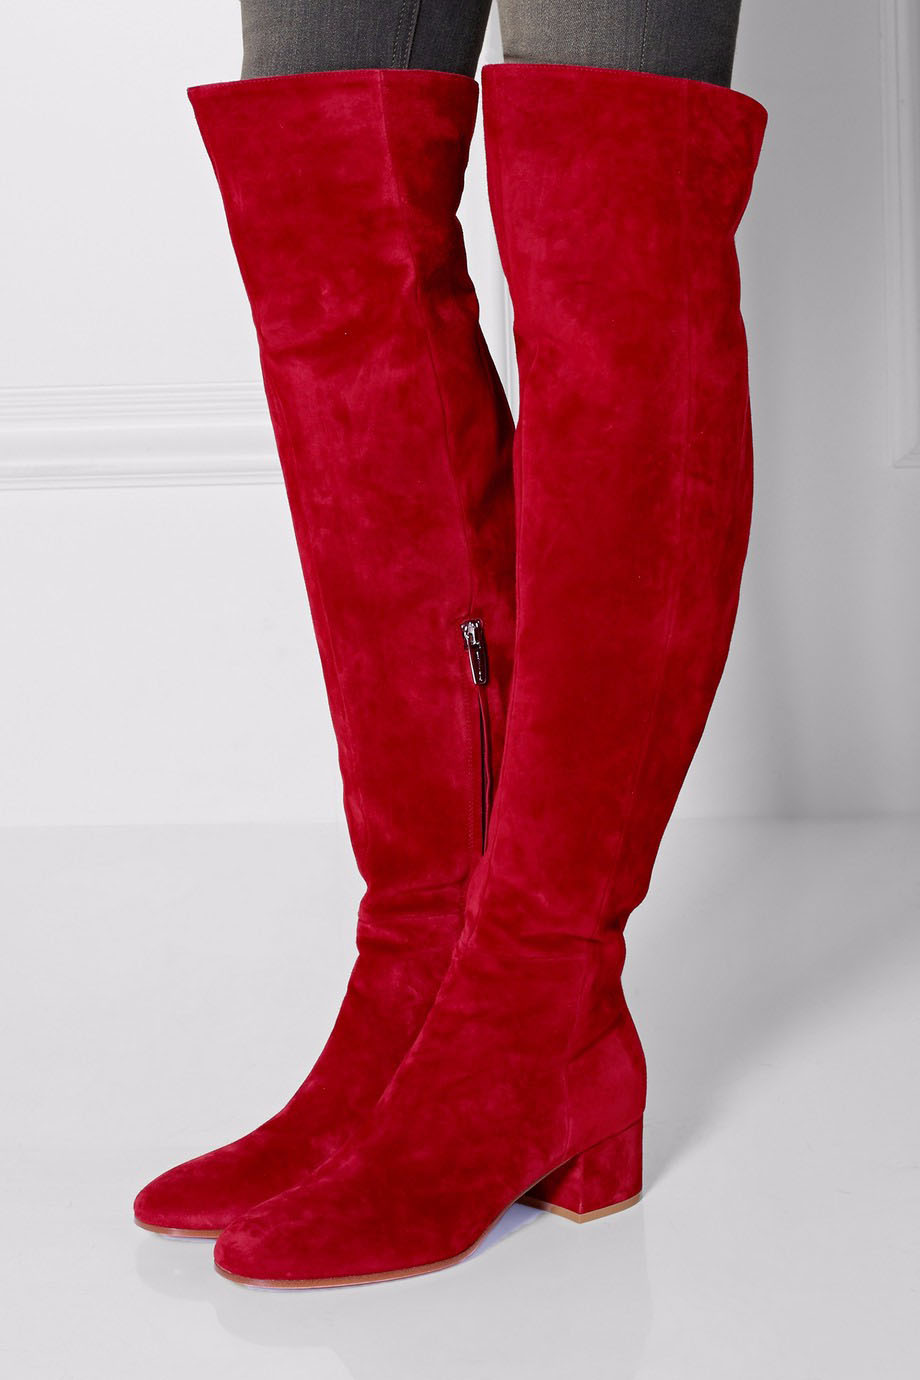 Women Winter Flat Boots Red Suede Over The Knee Boots Round Toe Thick Heels Tight High Boots Side Zipper Stretch Long Boots 2016 autumn winter hot selling royal blue suede over the knee high heel boots round toe thick heels high boots for woman